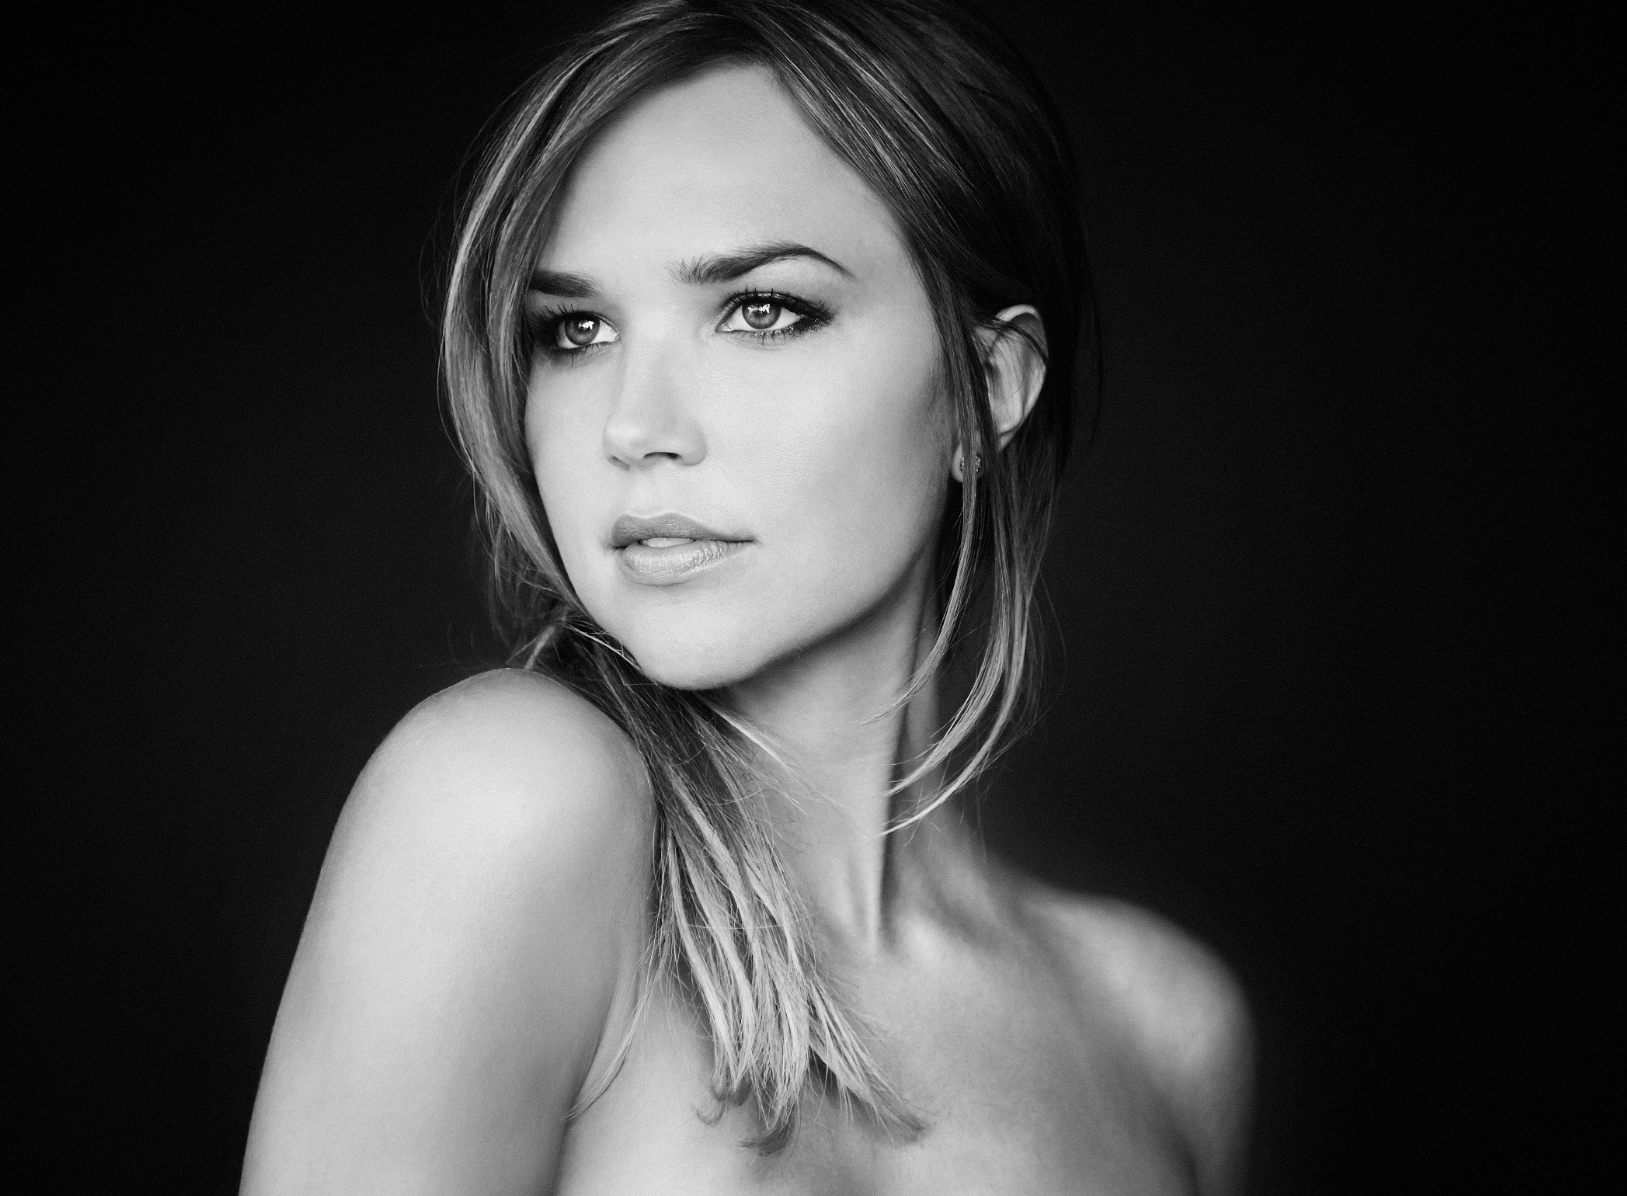 Photo of Arielle Kebbel: American actress and model